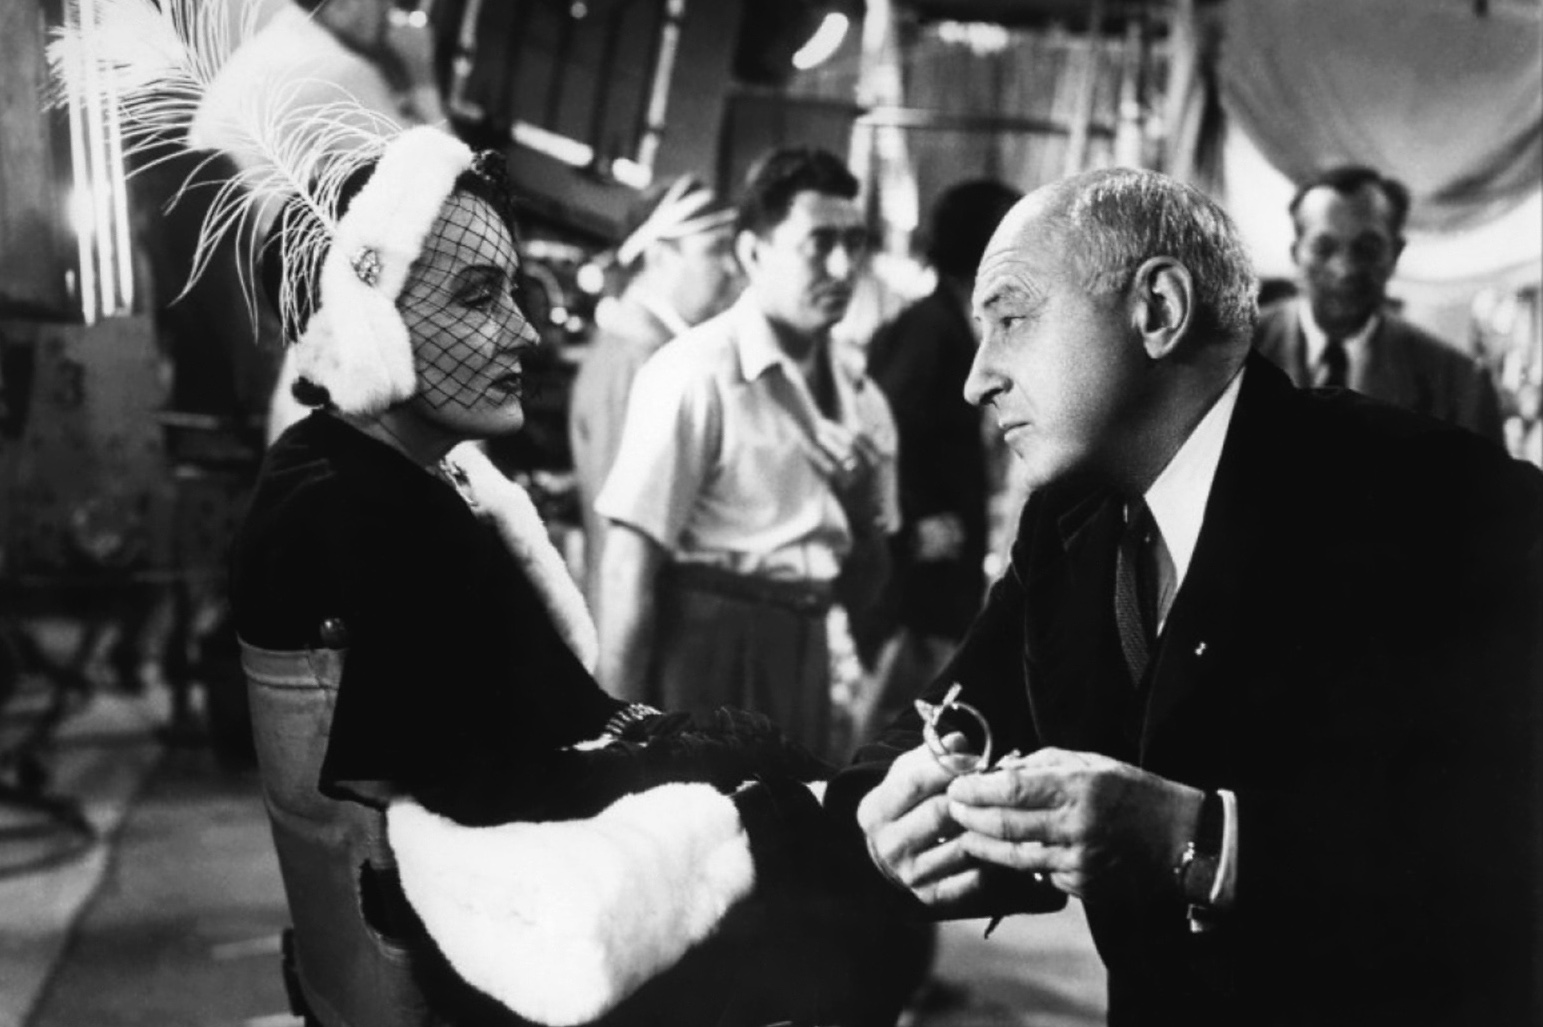 The film features cameos by real Hollywood figures like director Cecil B. DeMille